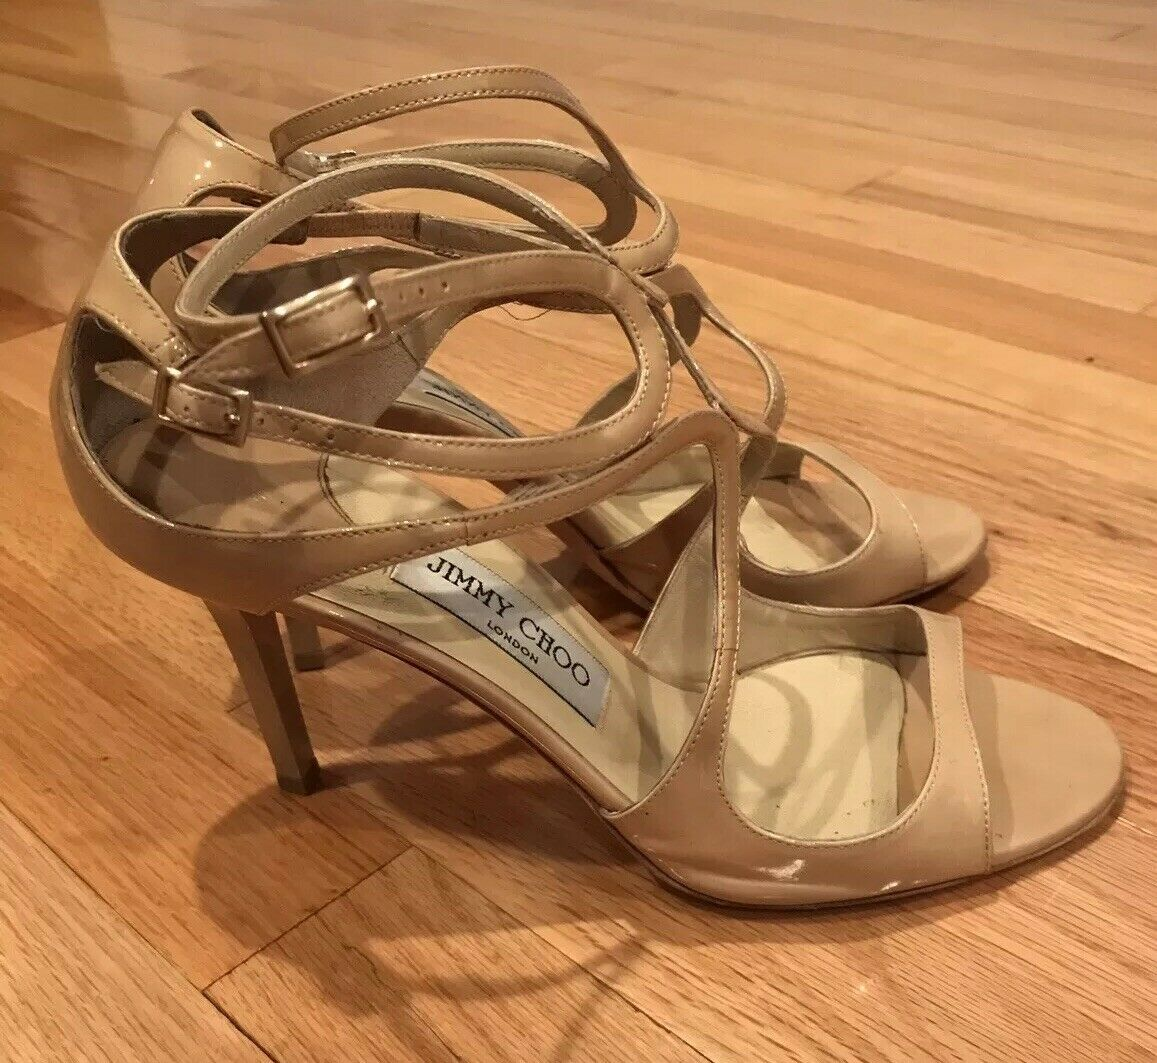 Jimmy Choo Nude Patent Leather Ankle Strap Cage Sandal Heel - 39